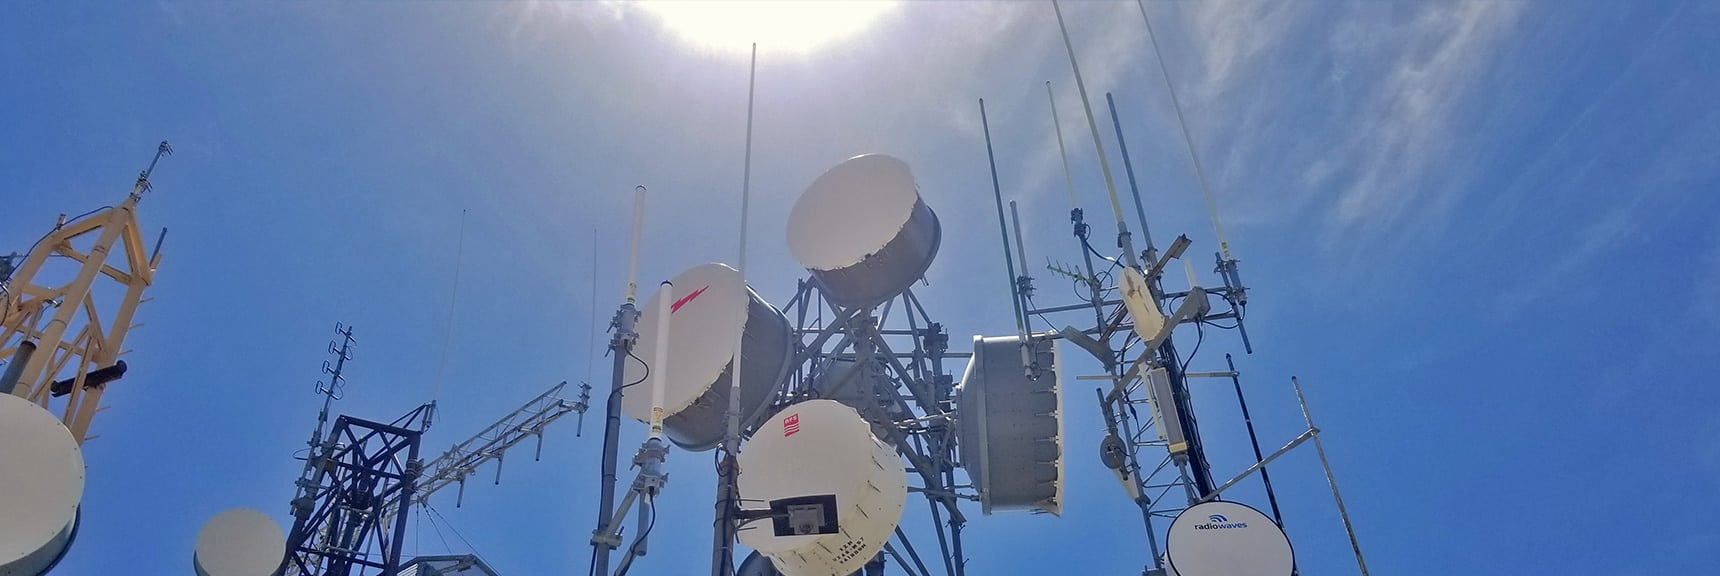 Mid Summit Communication Towers. Wind So Strong it Sounded Like a Jet Engine. | Potosi Mountain Spring Mountains Nevada